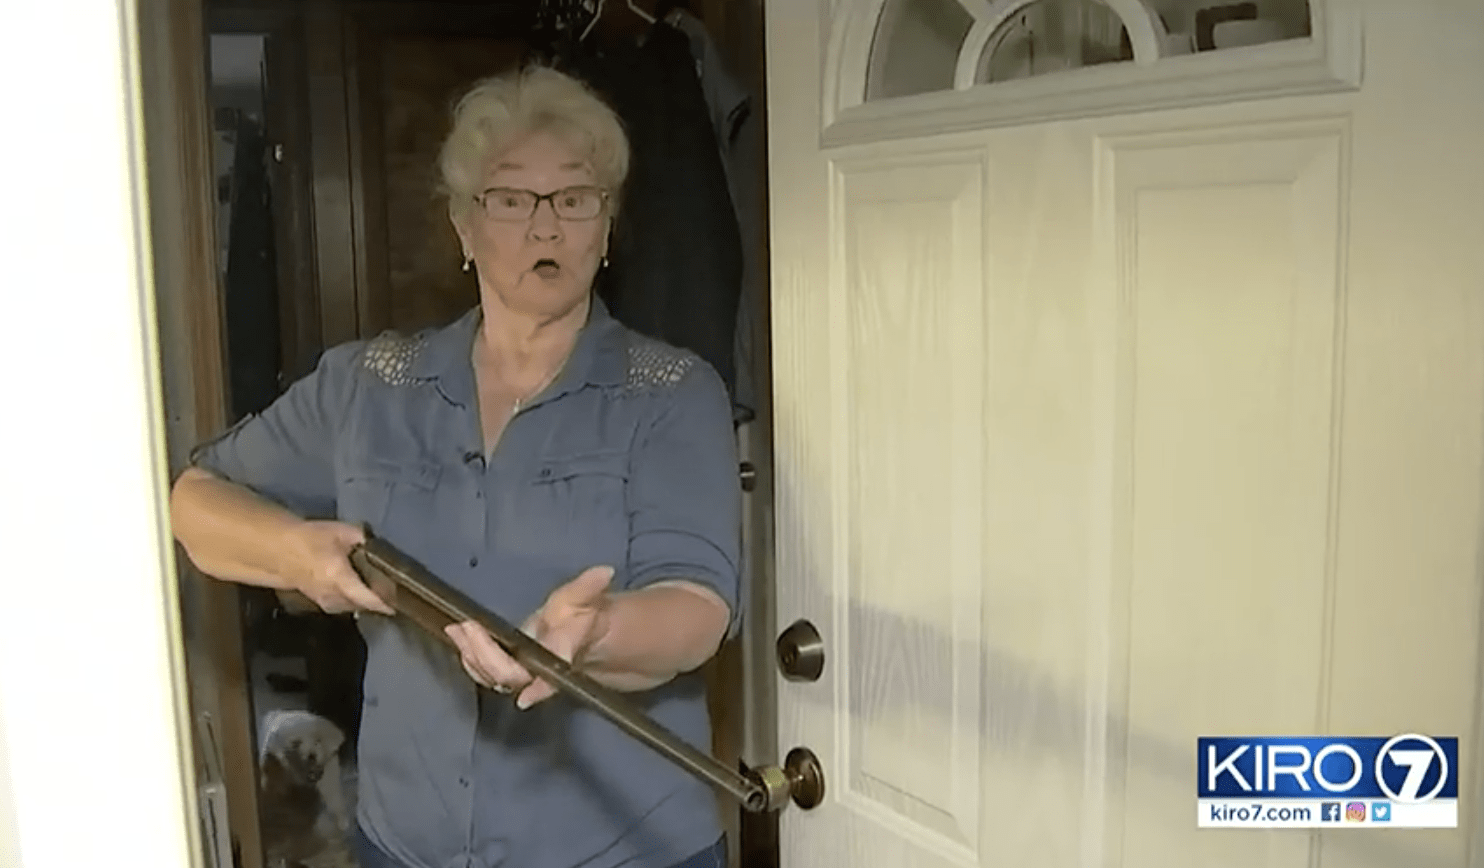 Man trying to break into home finds grandma armed with a shotgun - holds him until police arrive